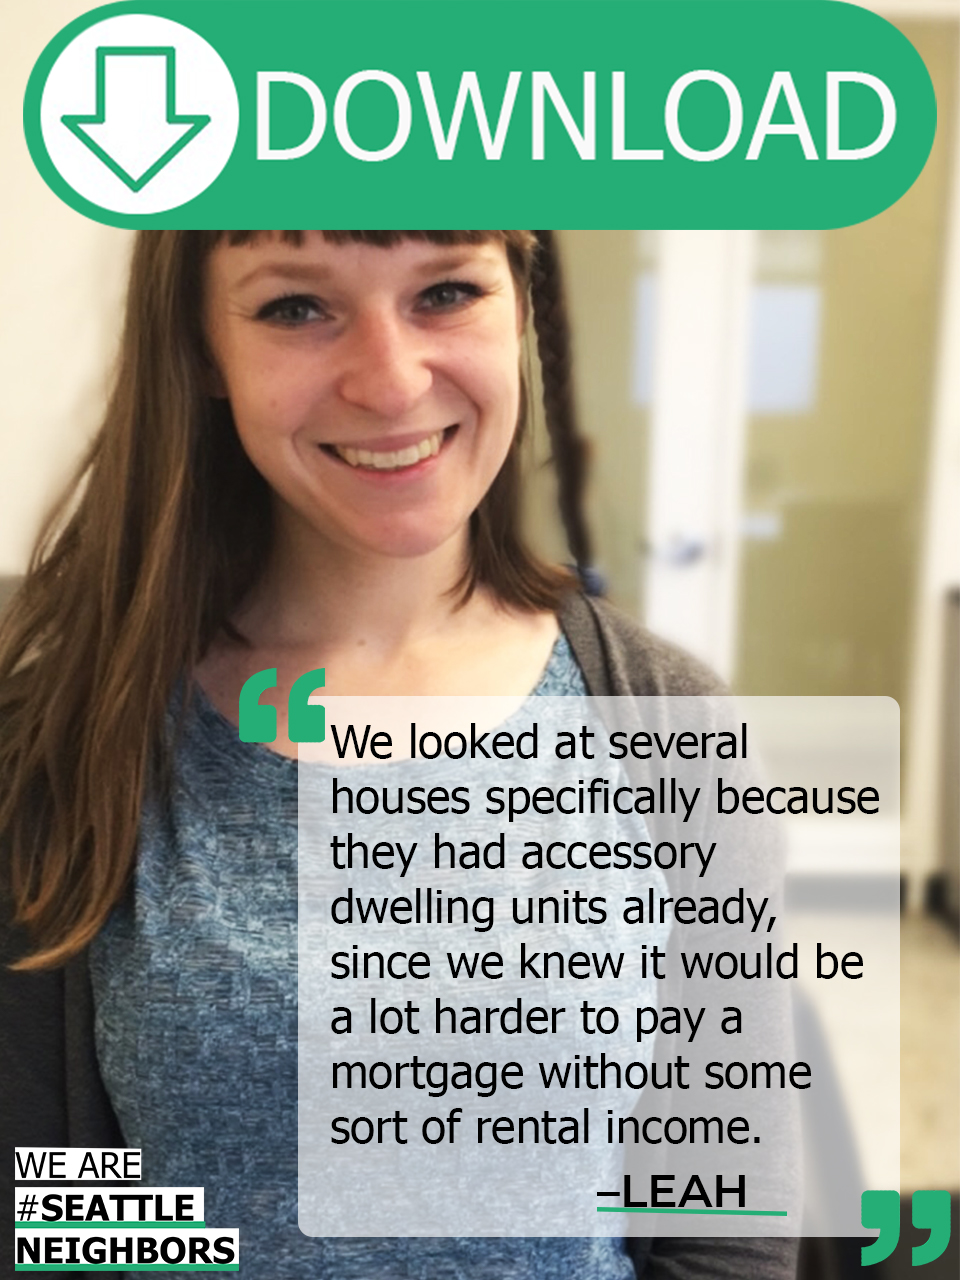 Read Leah's full story   here  .